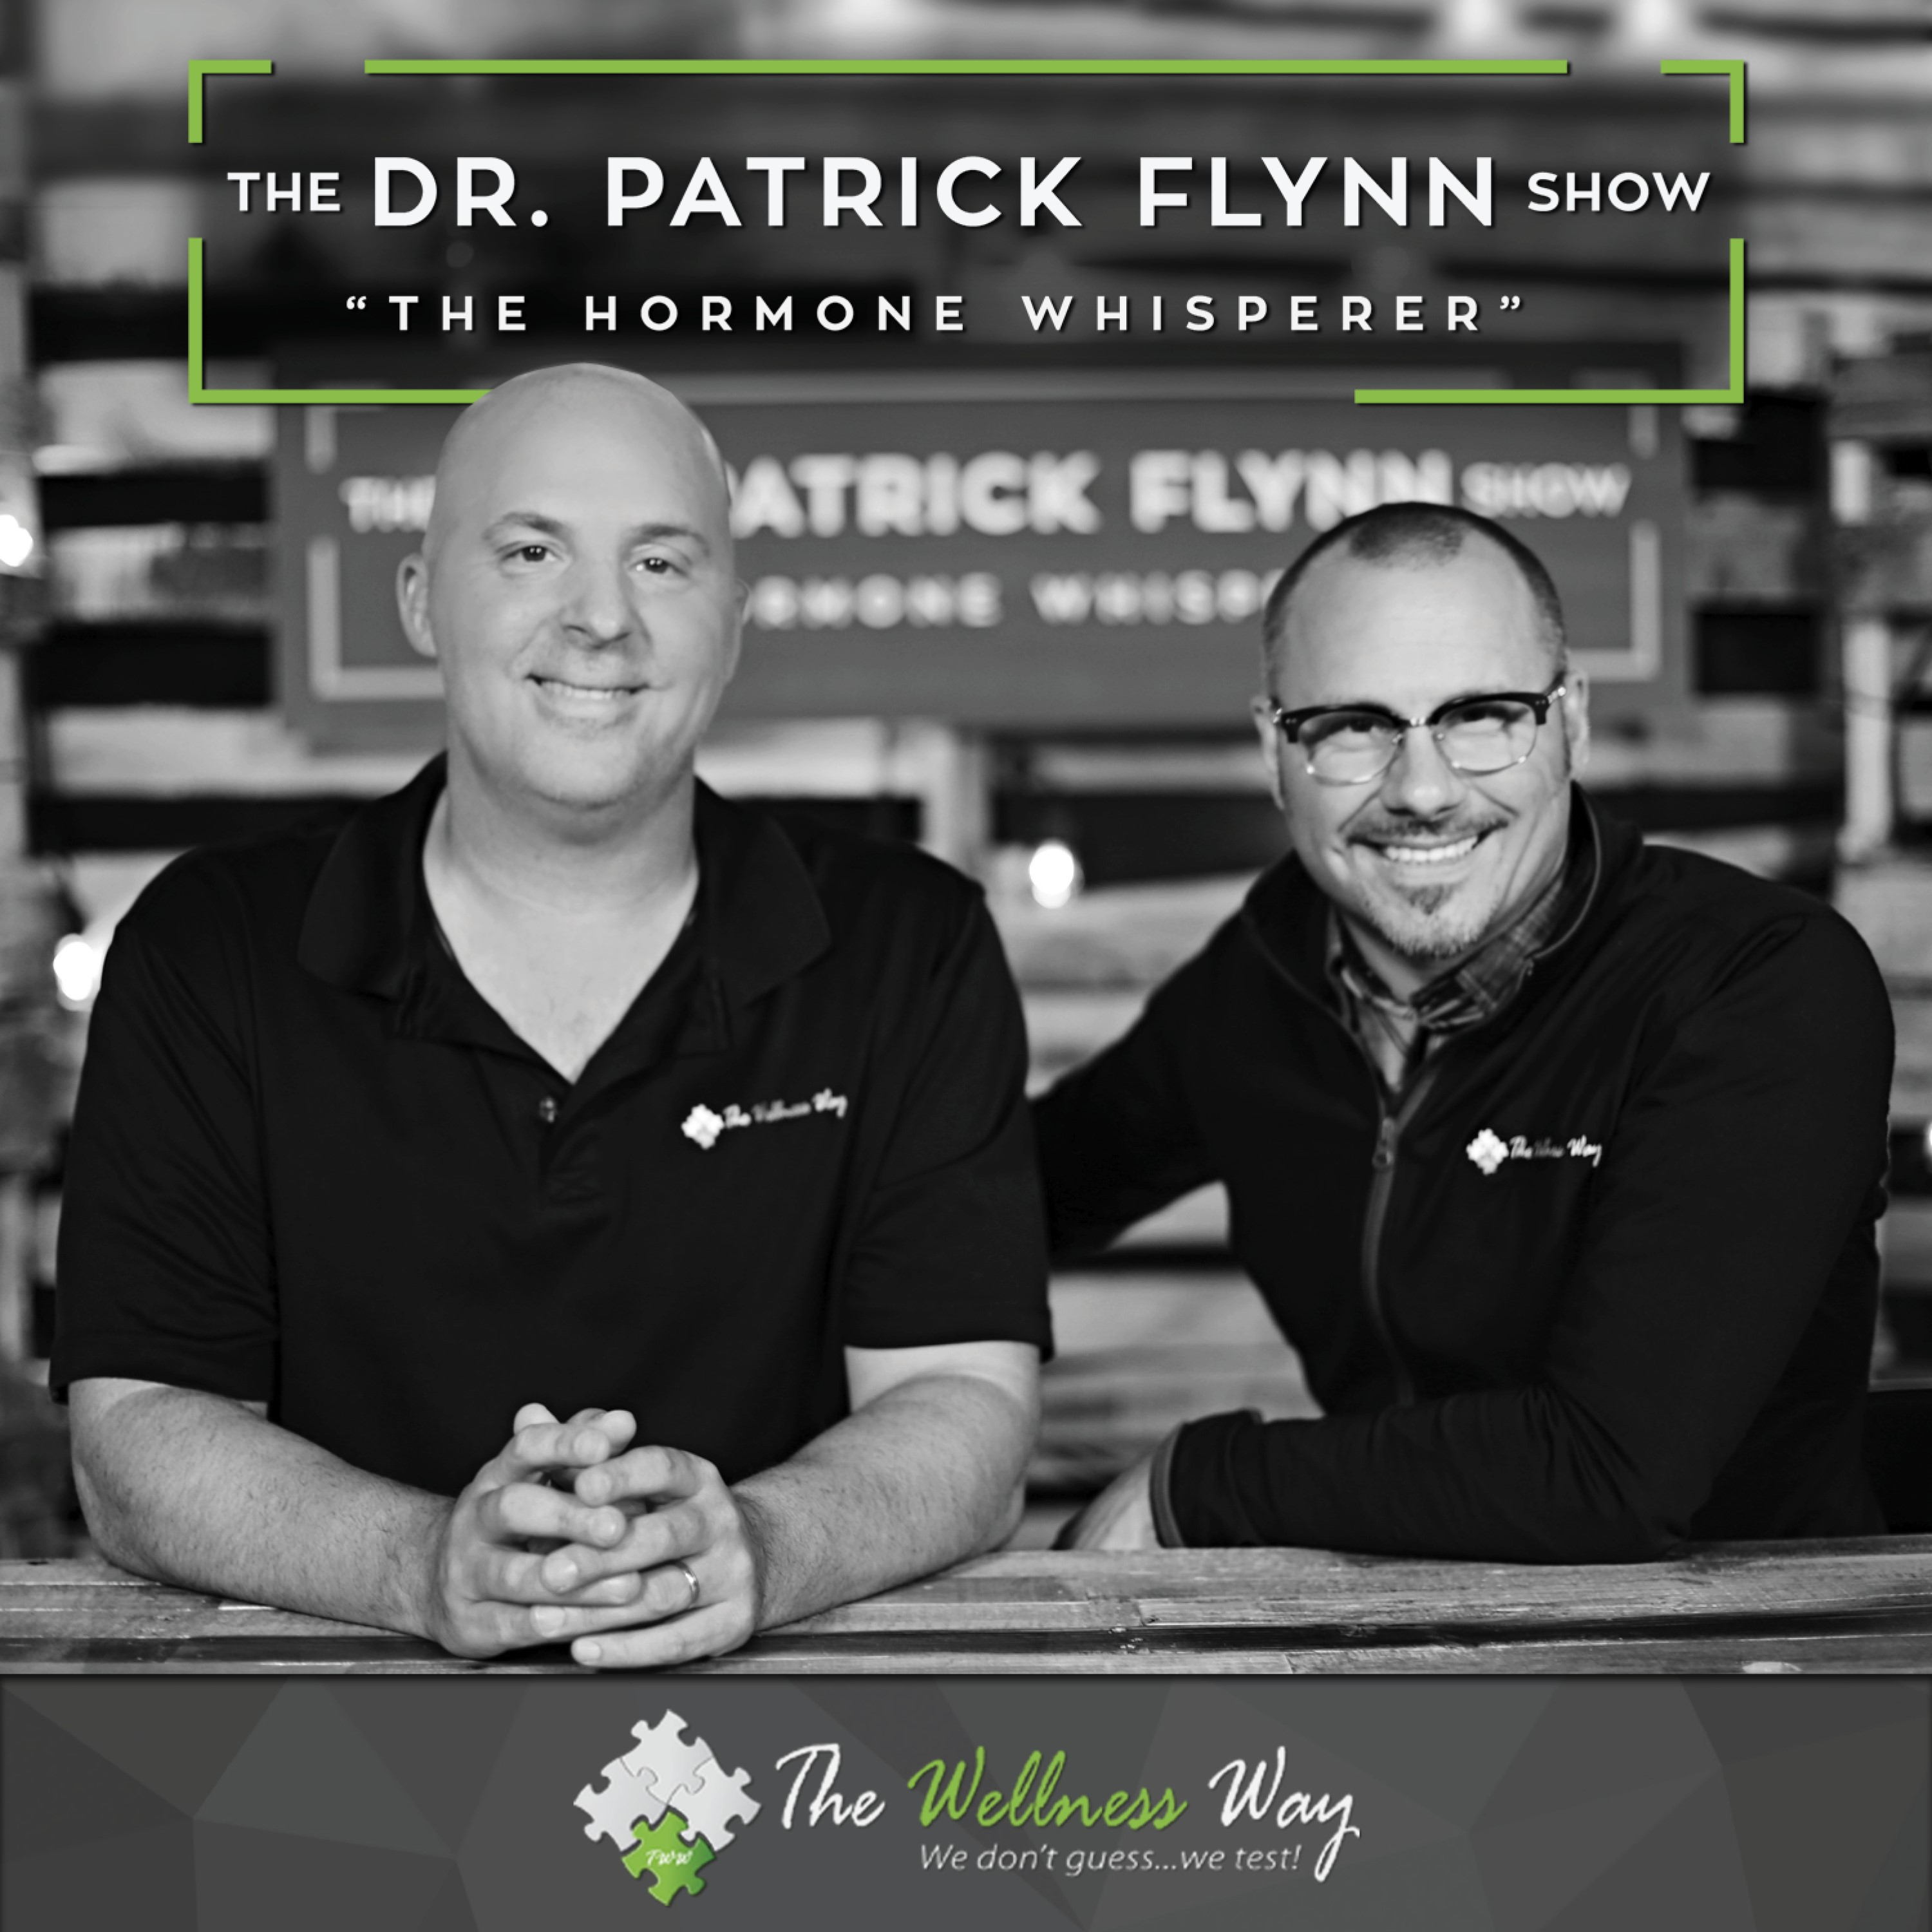 The Dr. Patrick Flynn Show show art